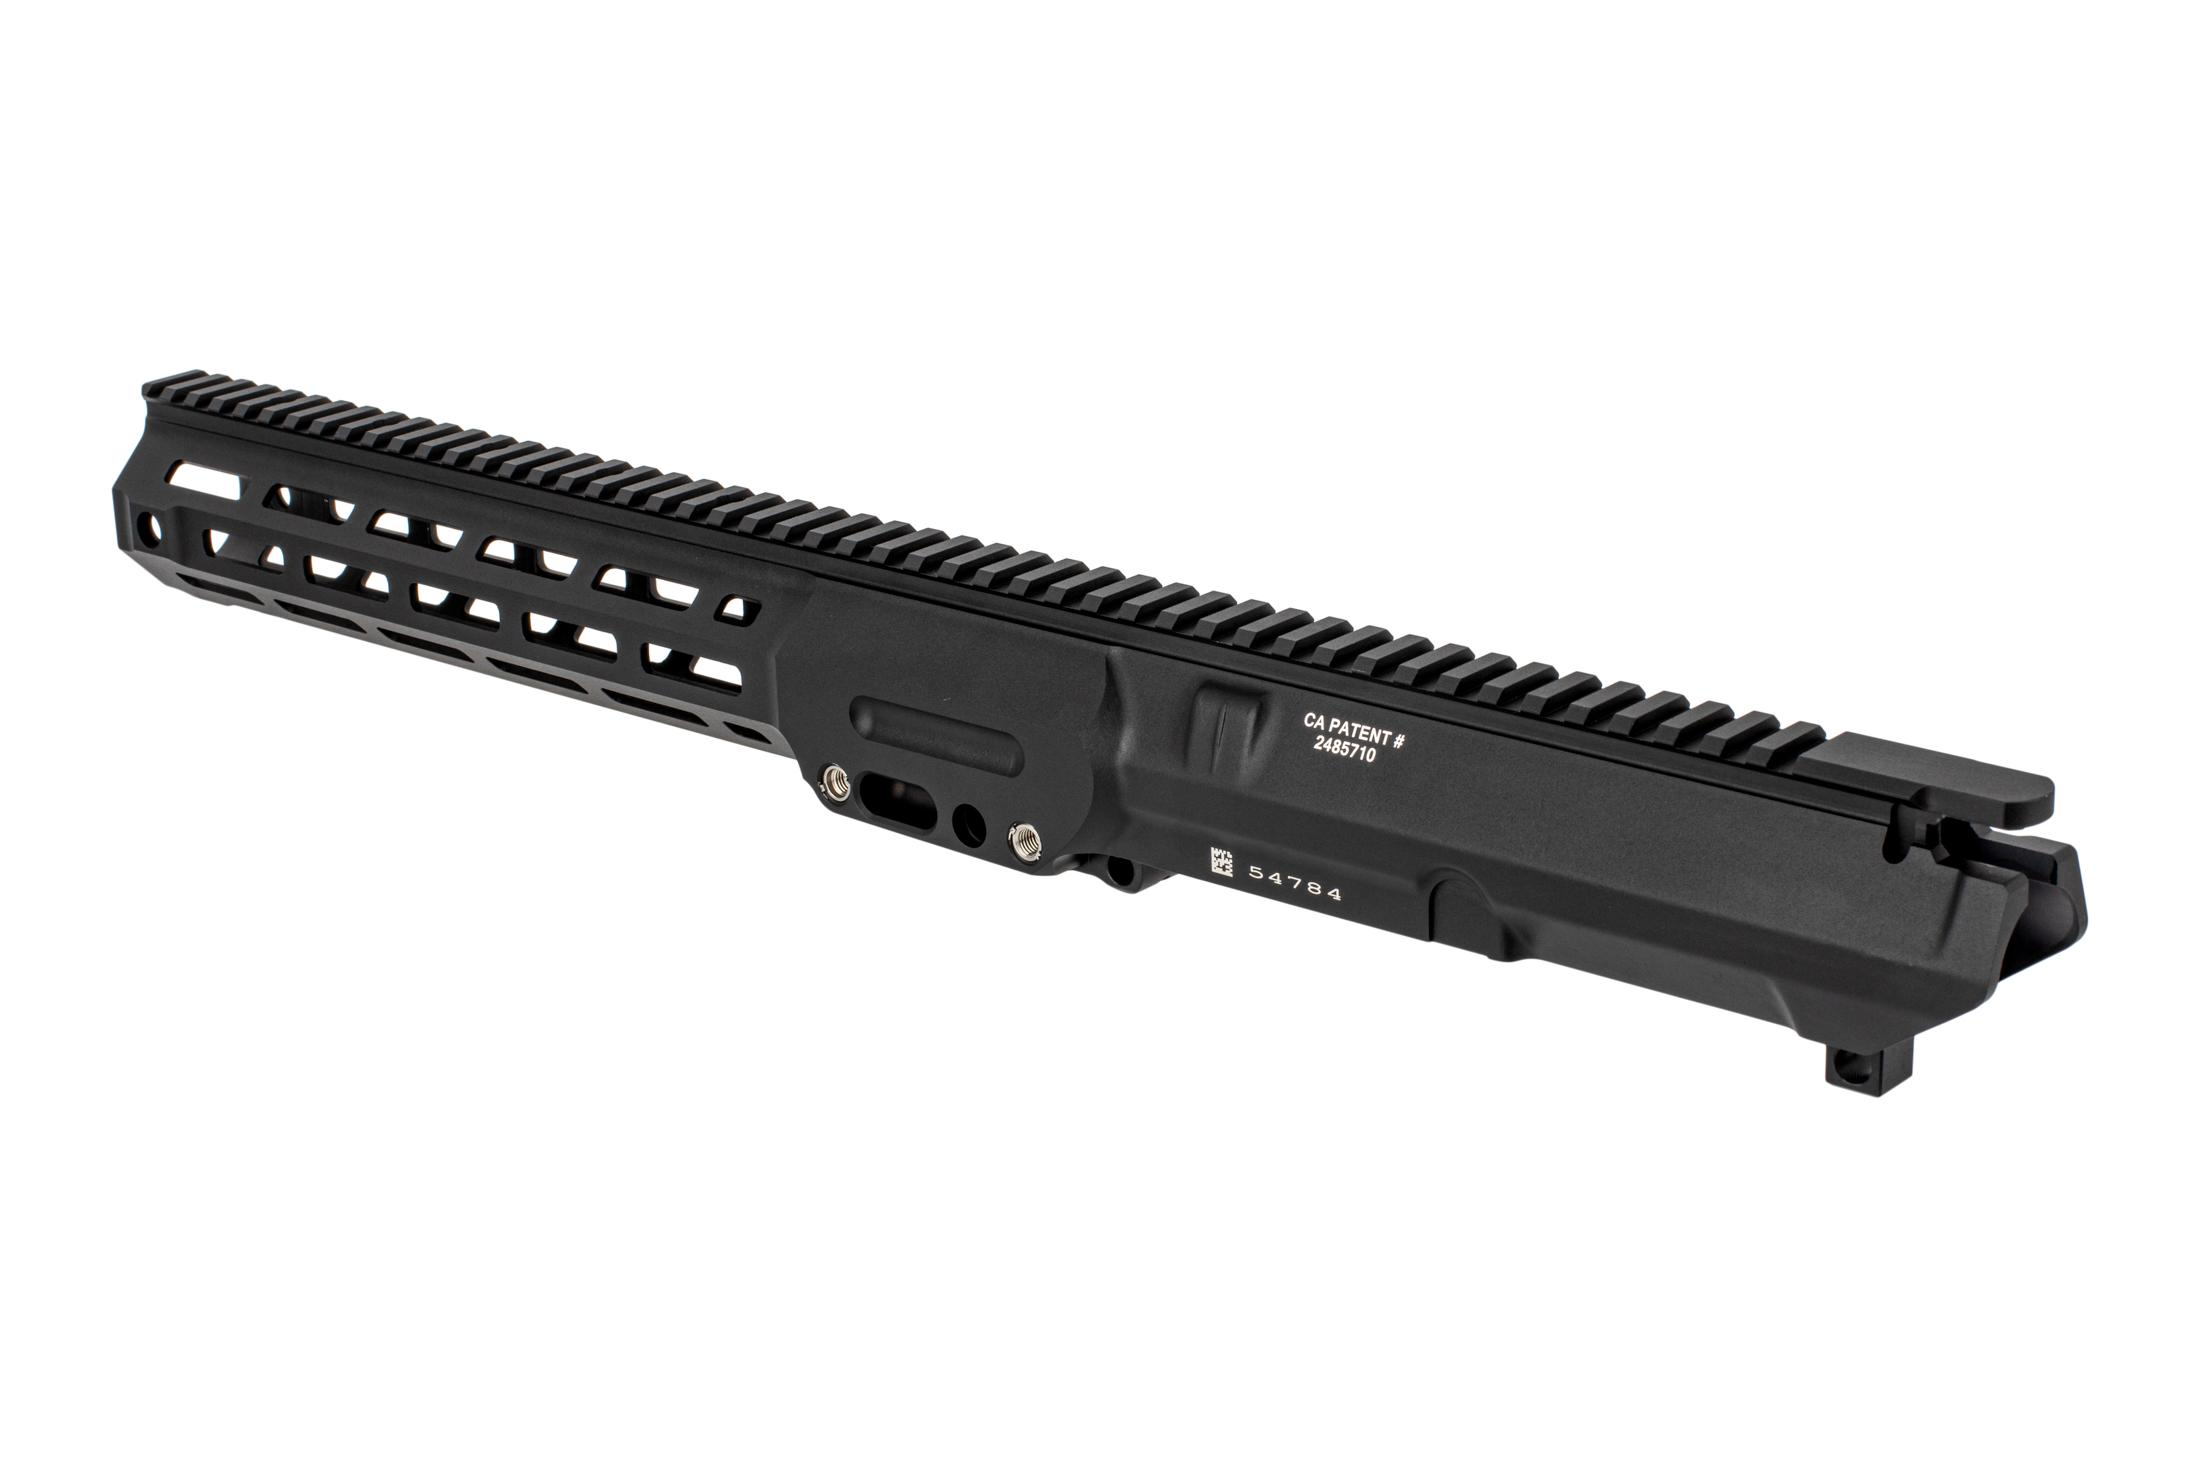 The Lewis Machine Tool MWS 308 upper receiver features a proprietary barrel nut system